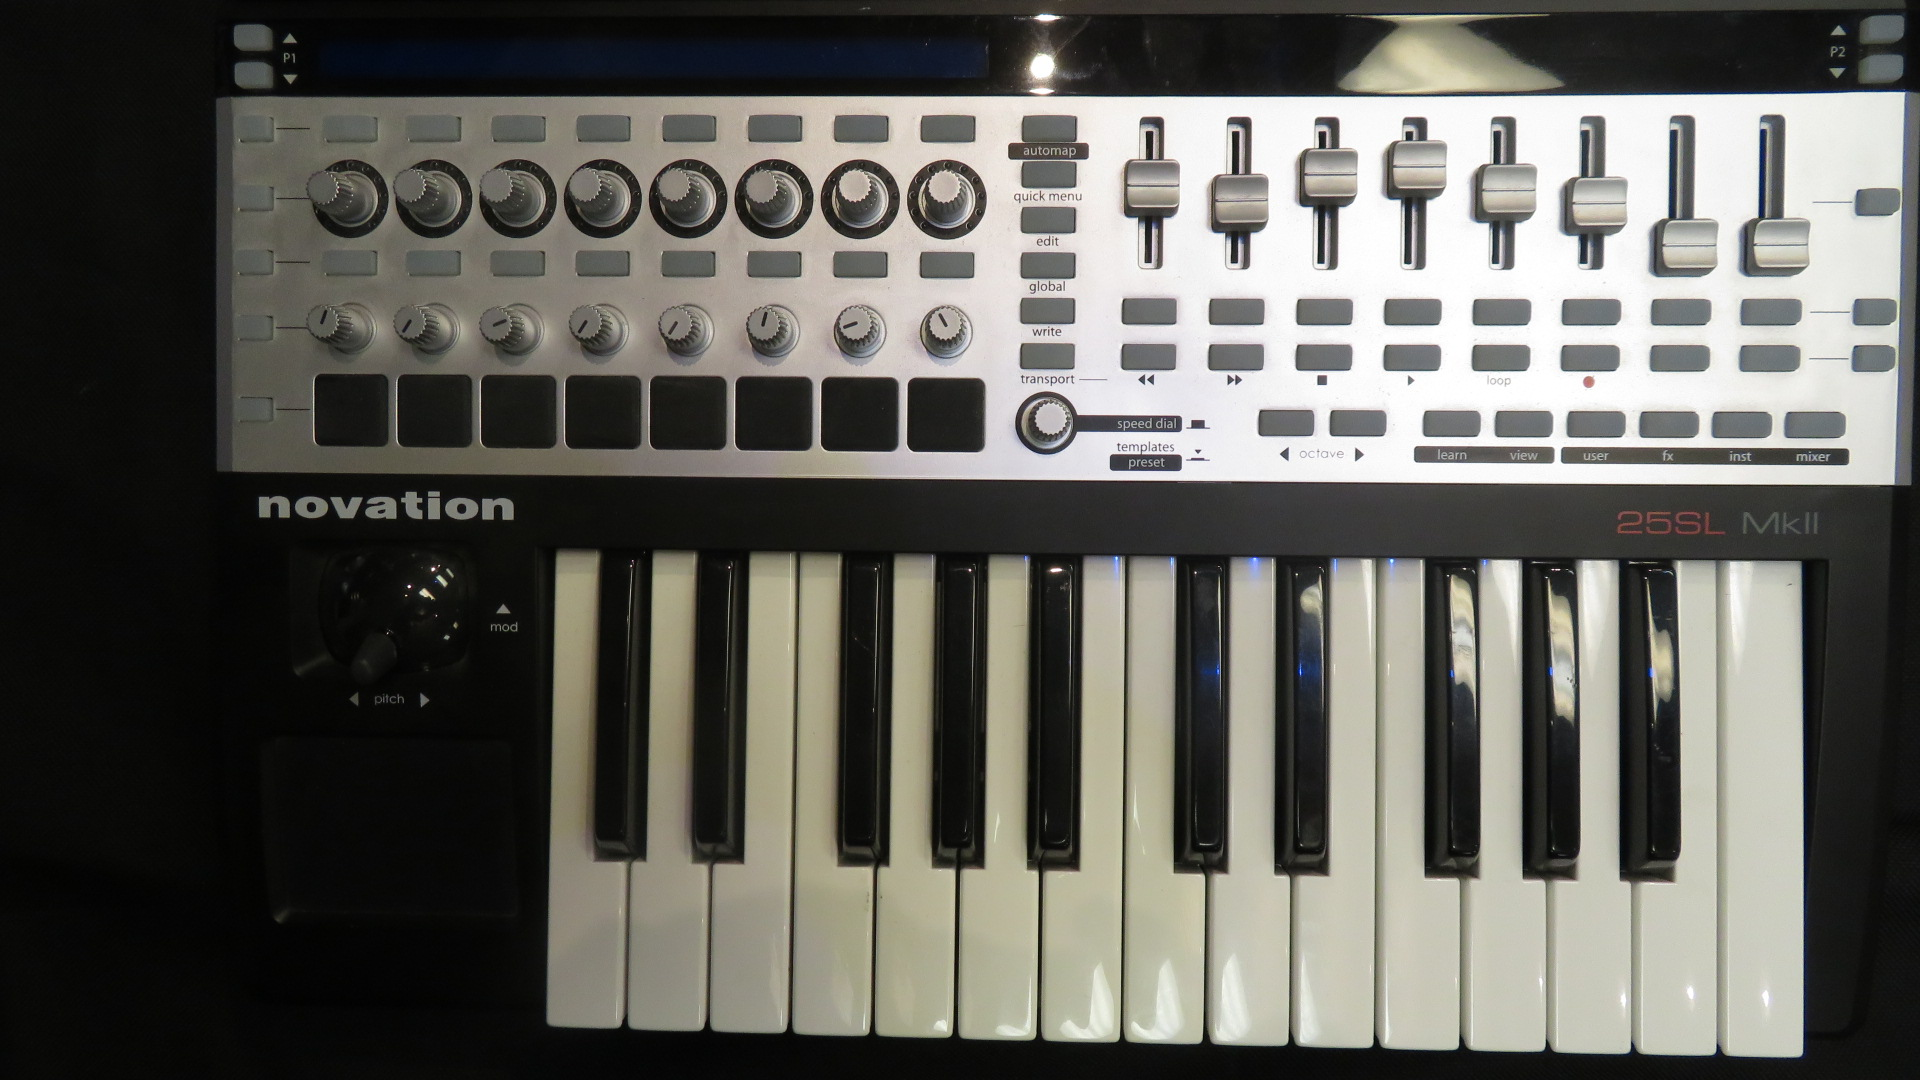 Novation - 25SL MKII